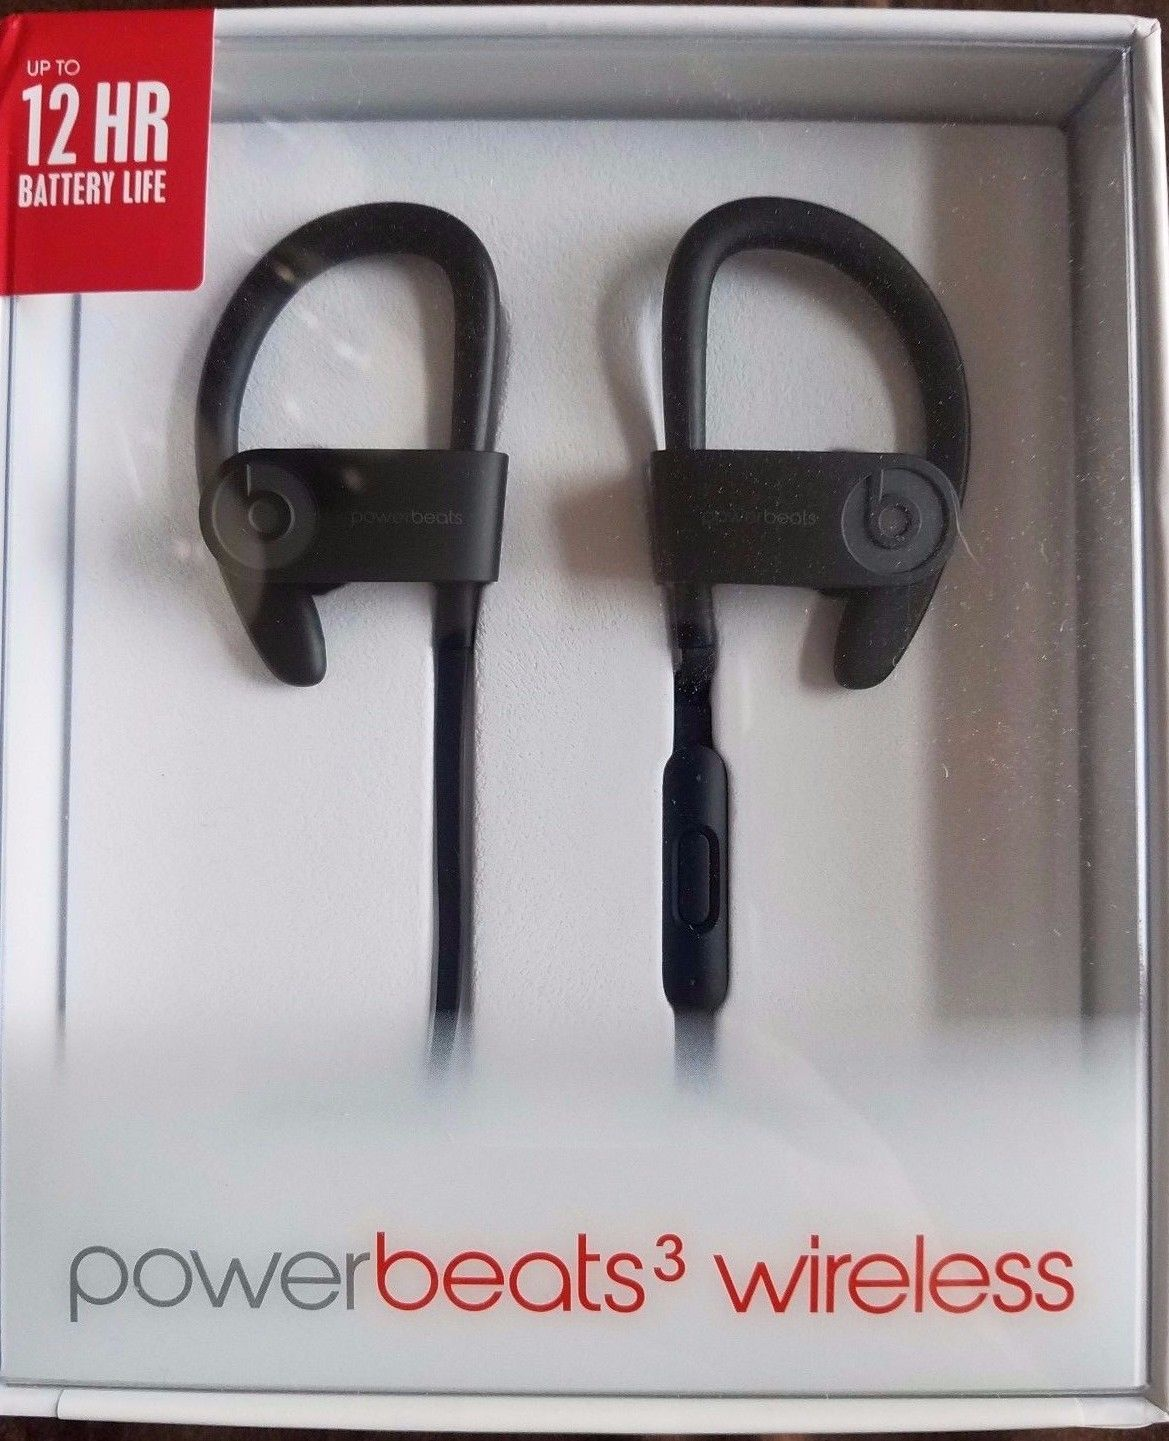 e23a8e3ee75 Beats by Dr. Dre Powerbeats3 Wireless and 25 similar items. 57